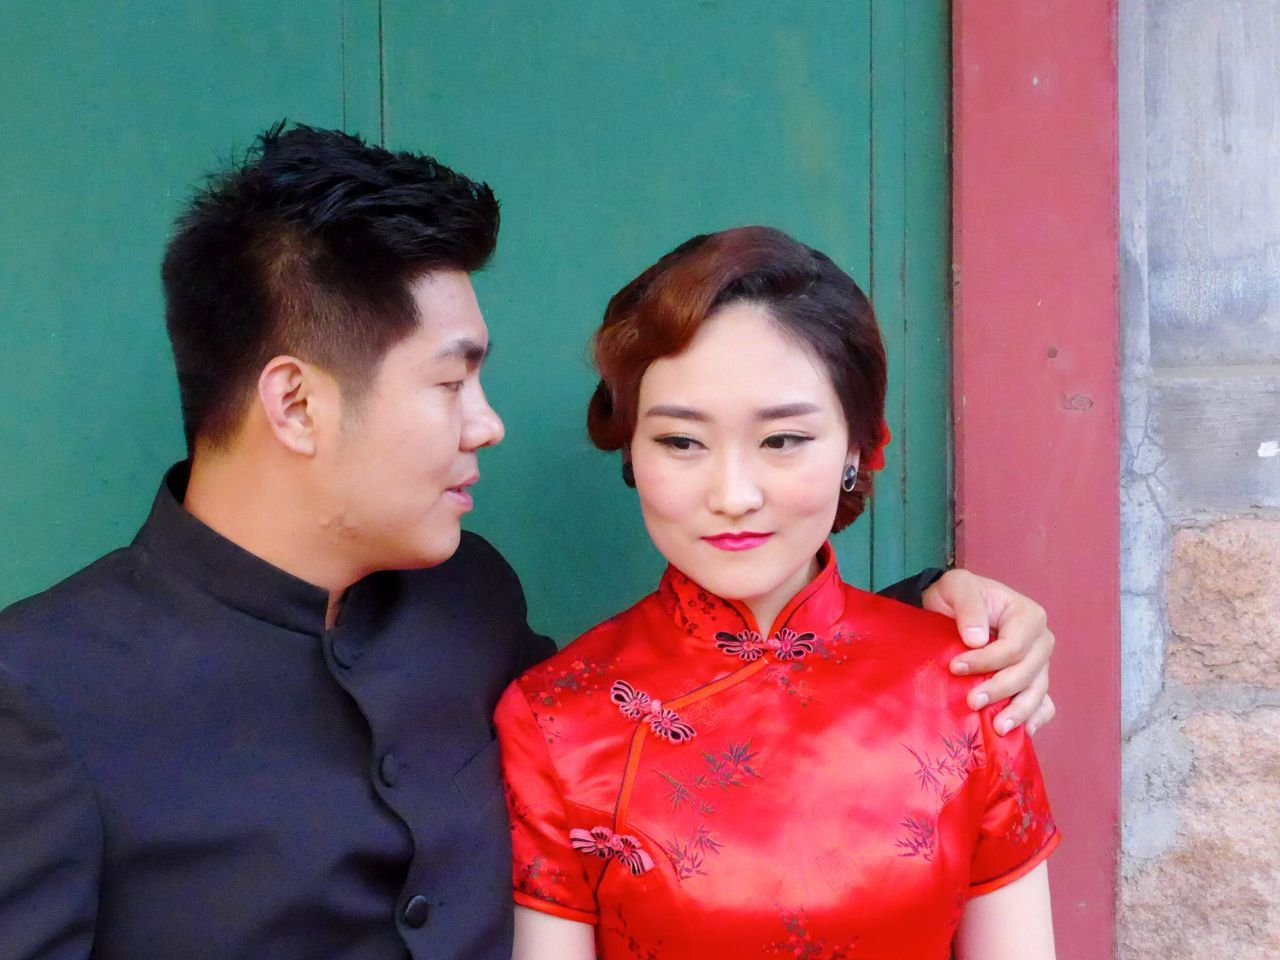 Young Adult Wedding Photography Two People Young Women Love Young Men Lifestyles Black Hair Red Front View Leisure Activity Togetherness Well-dressed Happiness Bonding Architecture China Traditional Clothing China The Portraitist - 2017 EyeEm Awards The Street Photographer - 2017 EyeEm Awards The Photojournalist - 2017 EyeEm Awards China Photos Chinese People Chinese Wedding Traditional Chinese Wedding Outfit